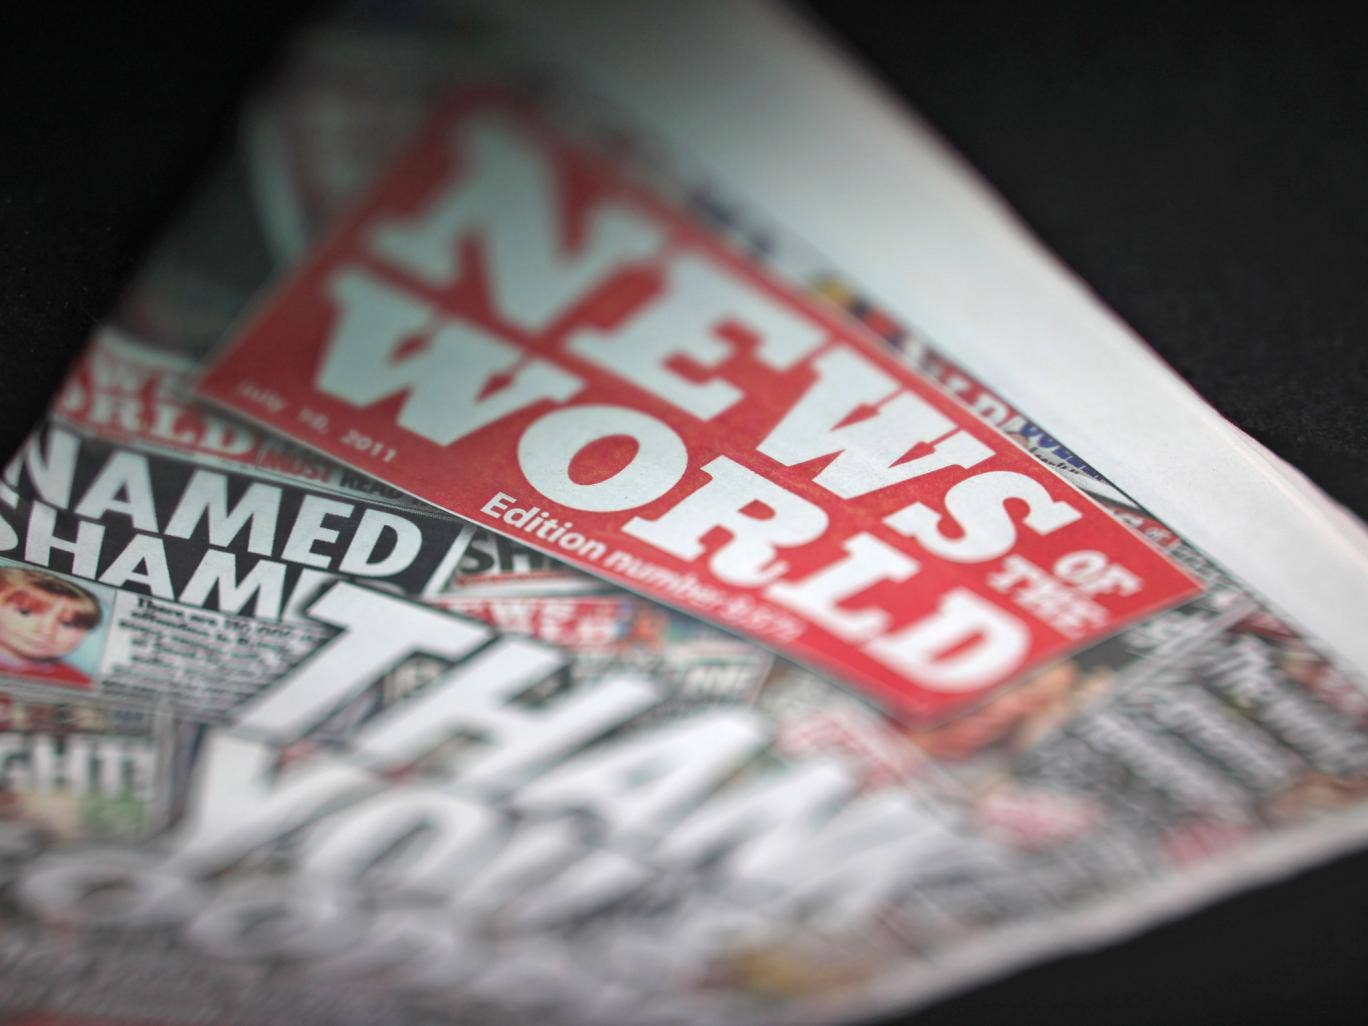 The final edition of the News of the World newspaper